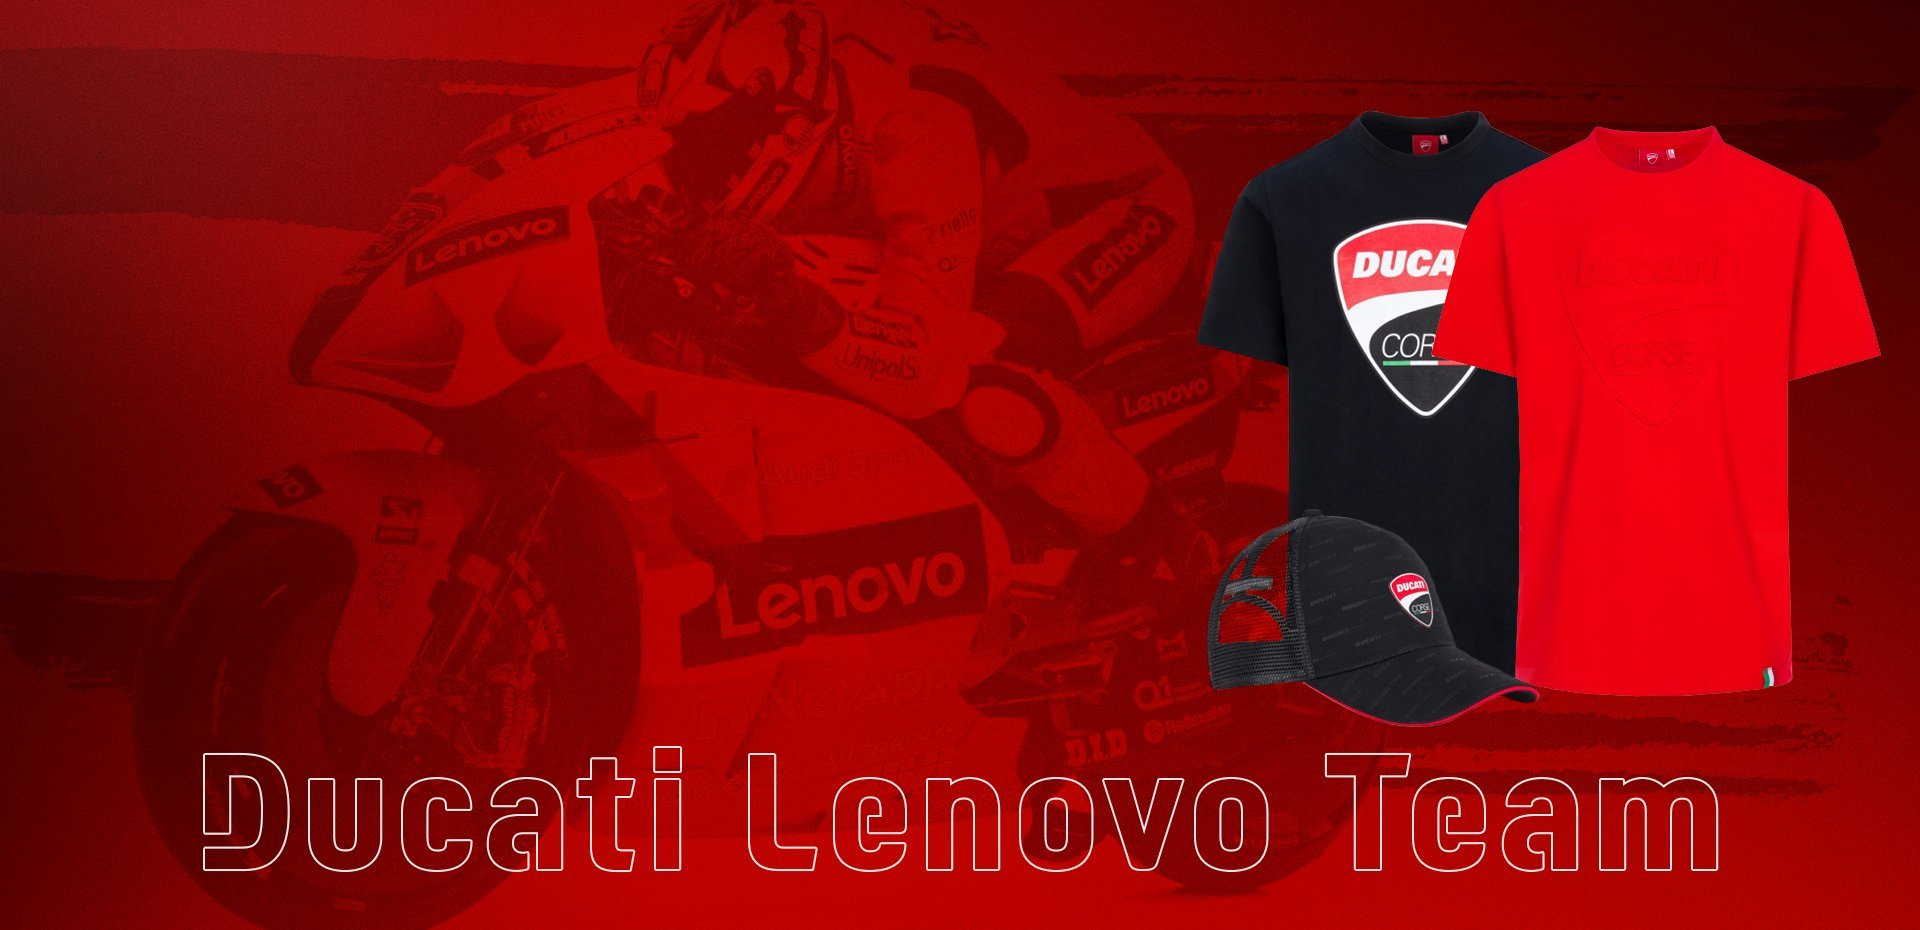 New Ducati Lenovo Team